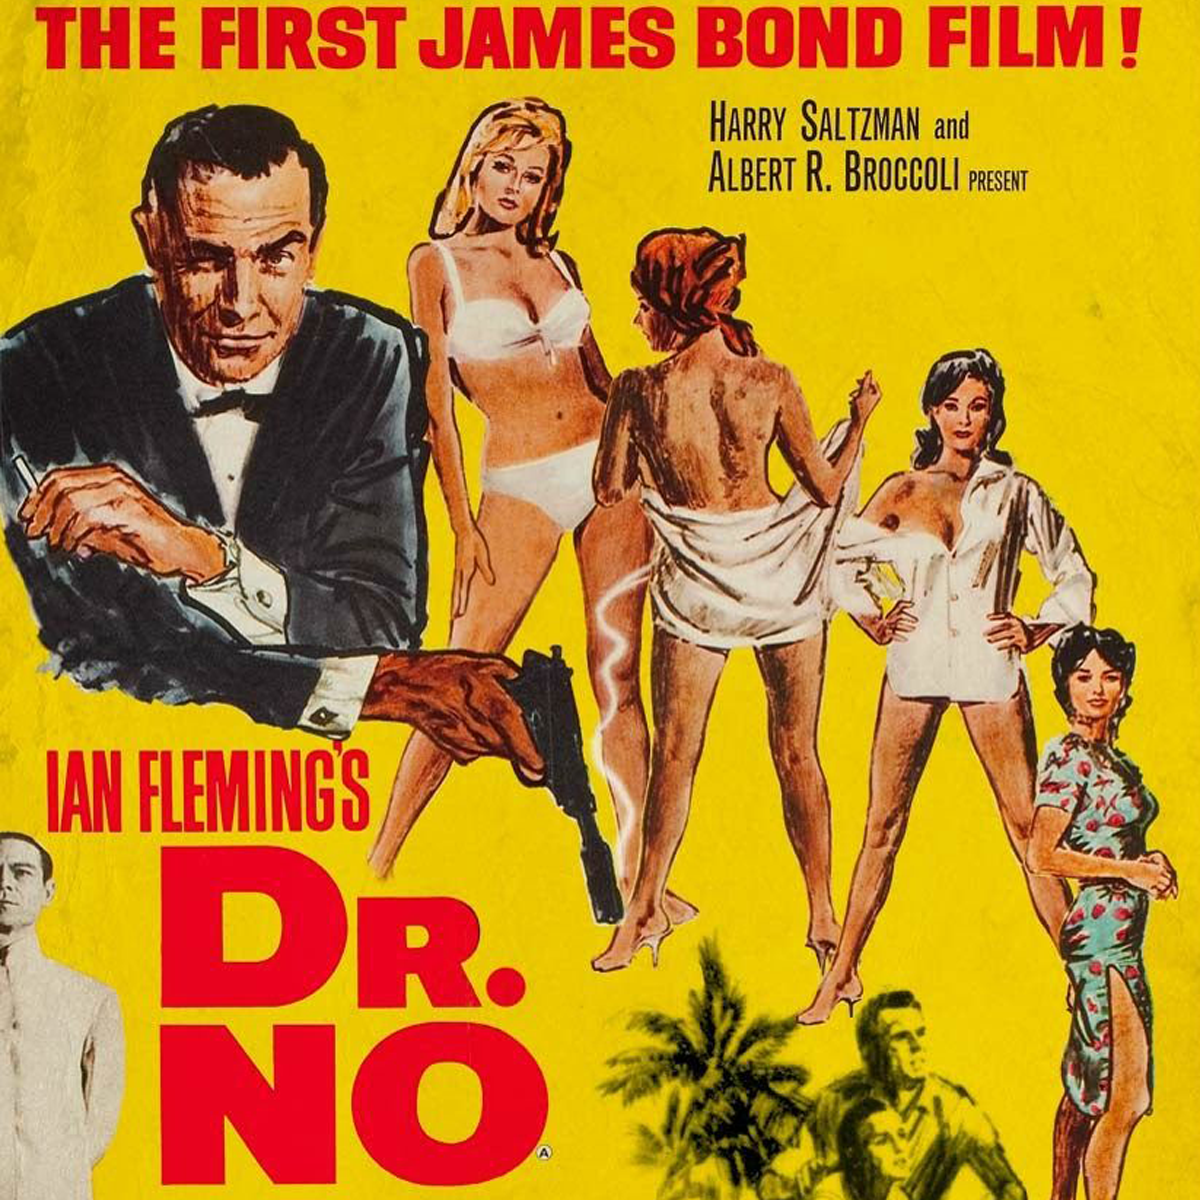 ISTYA Dr No movie review